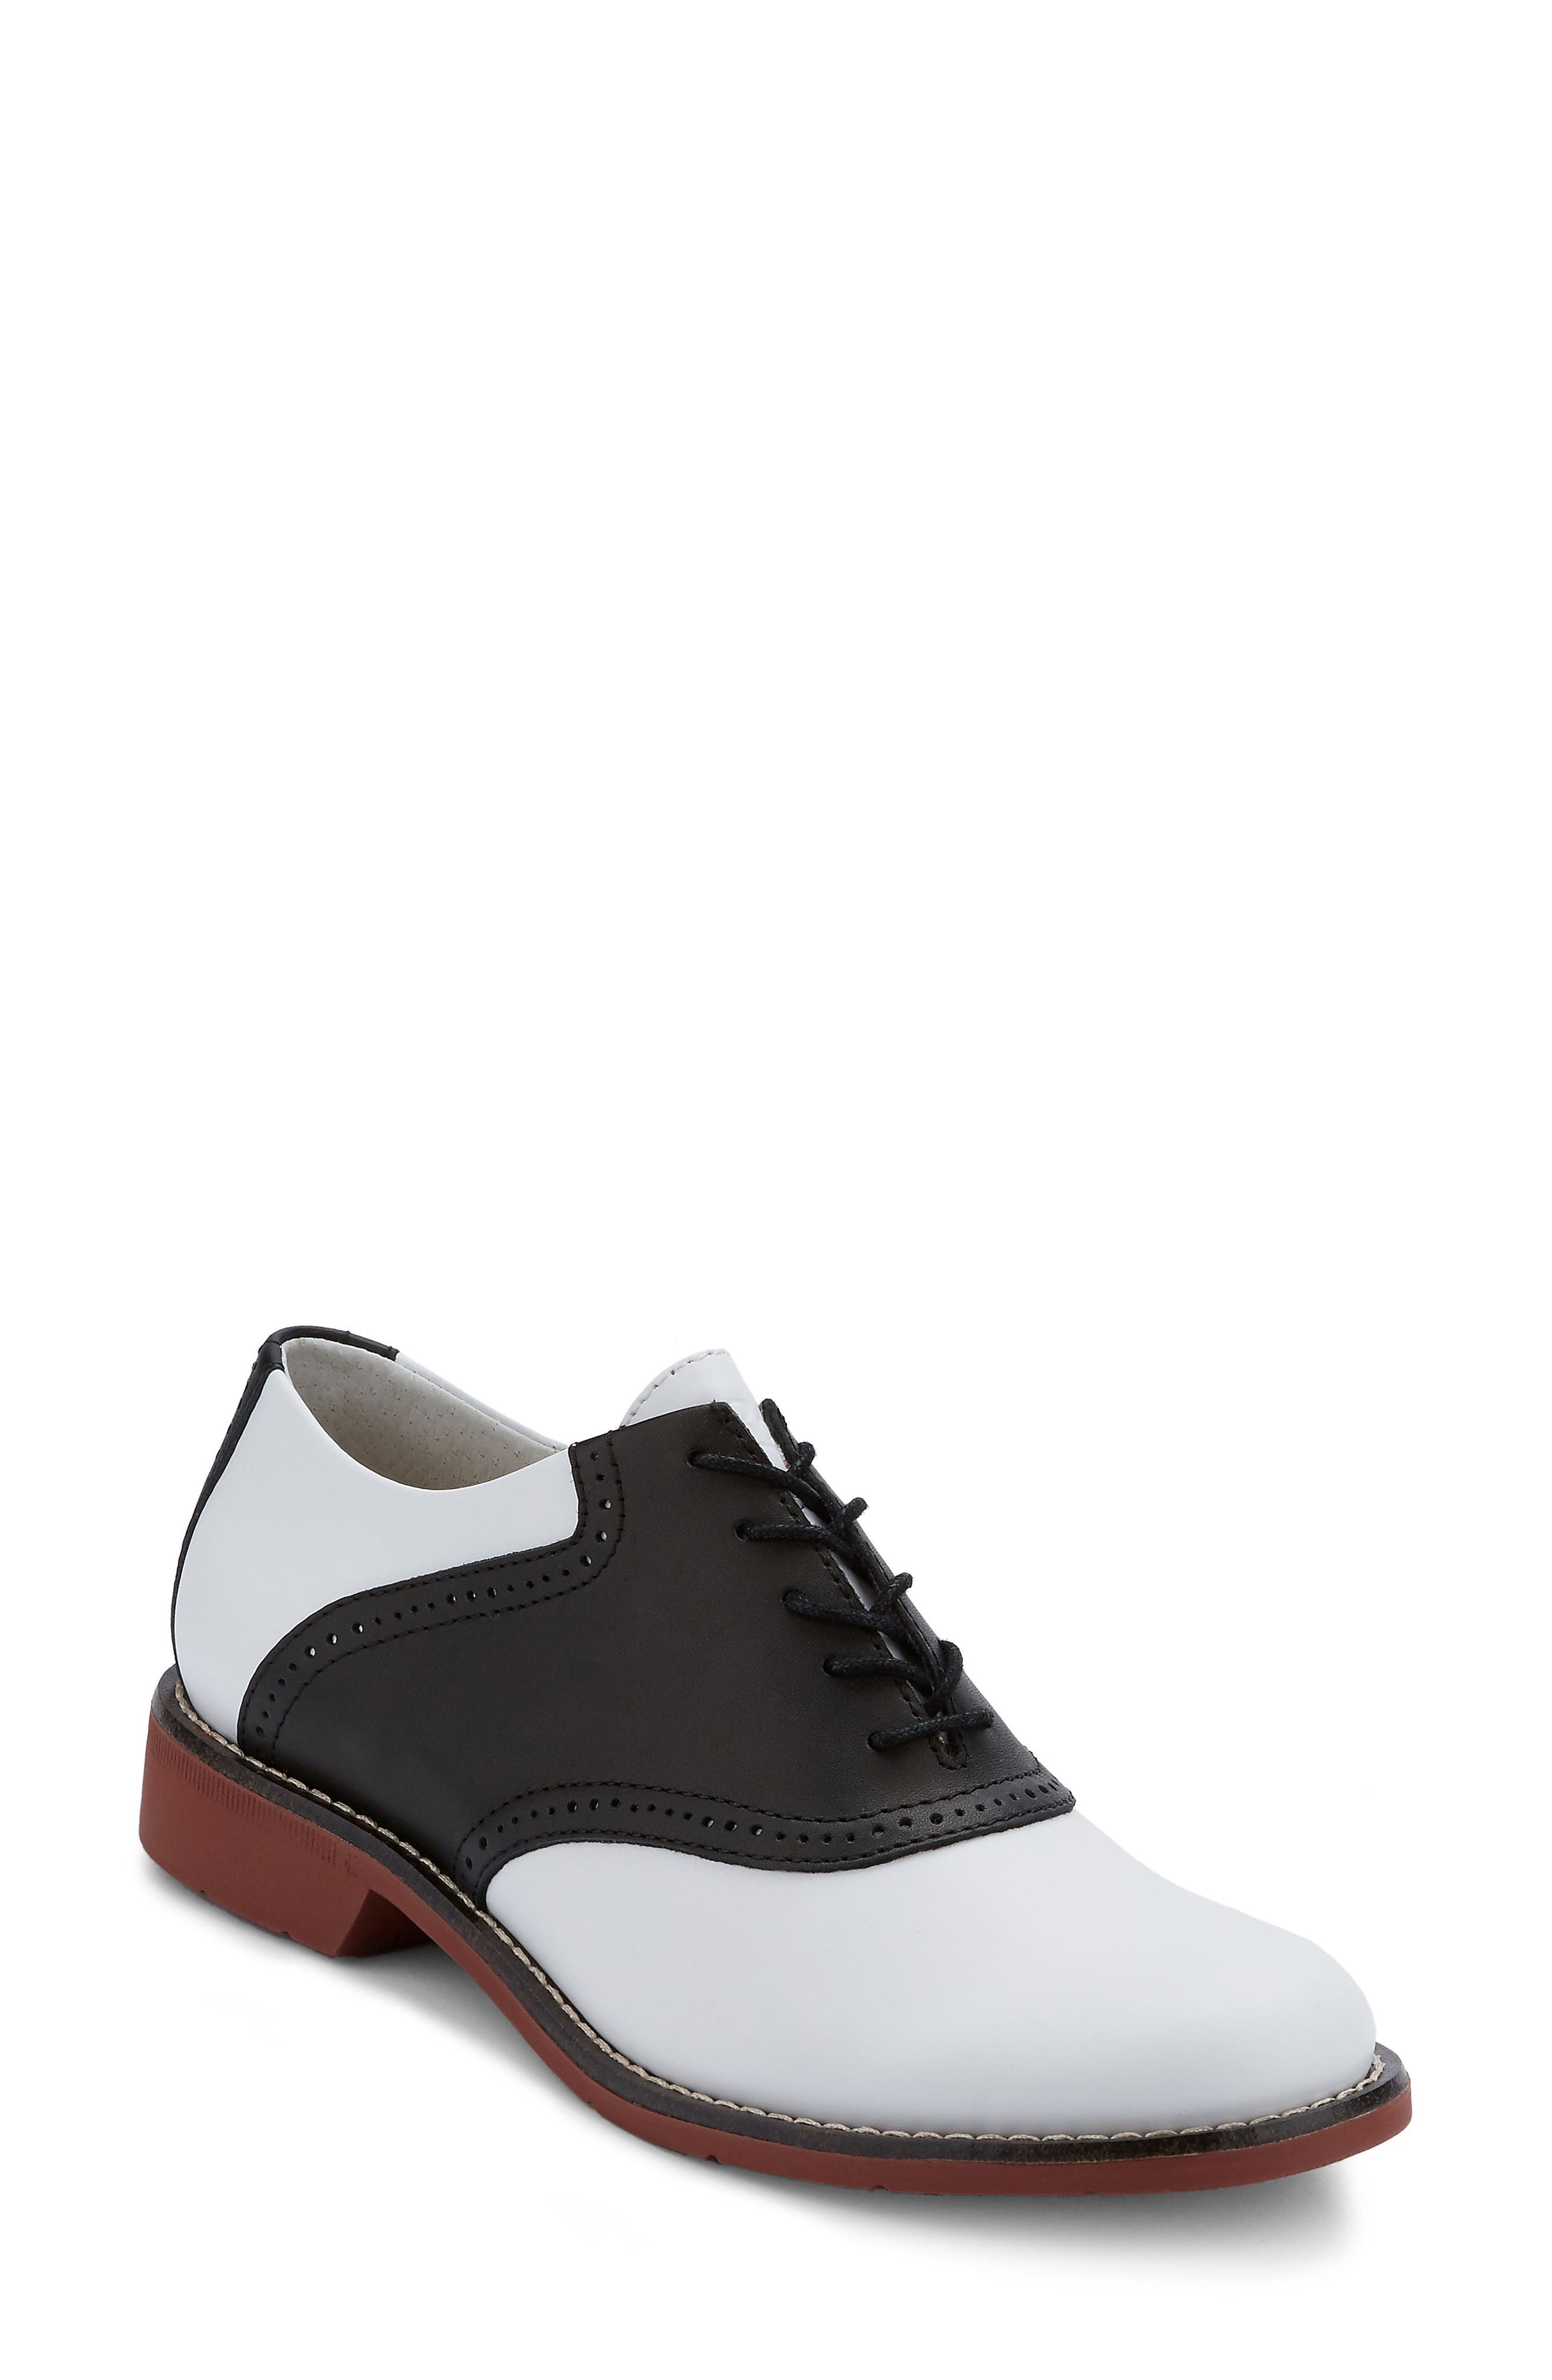 G.H. Bass and Co. Dora Lace-Up Oxford,                             Main thumbnail 1, color,                             BLACK/ WHITE LEATHER